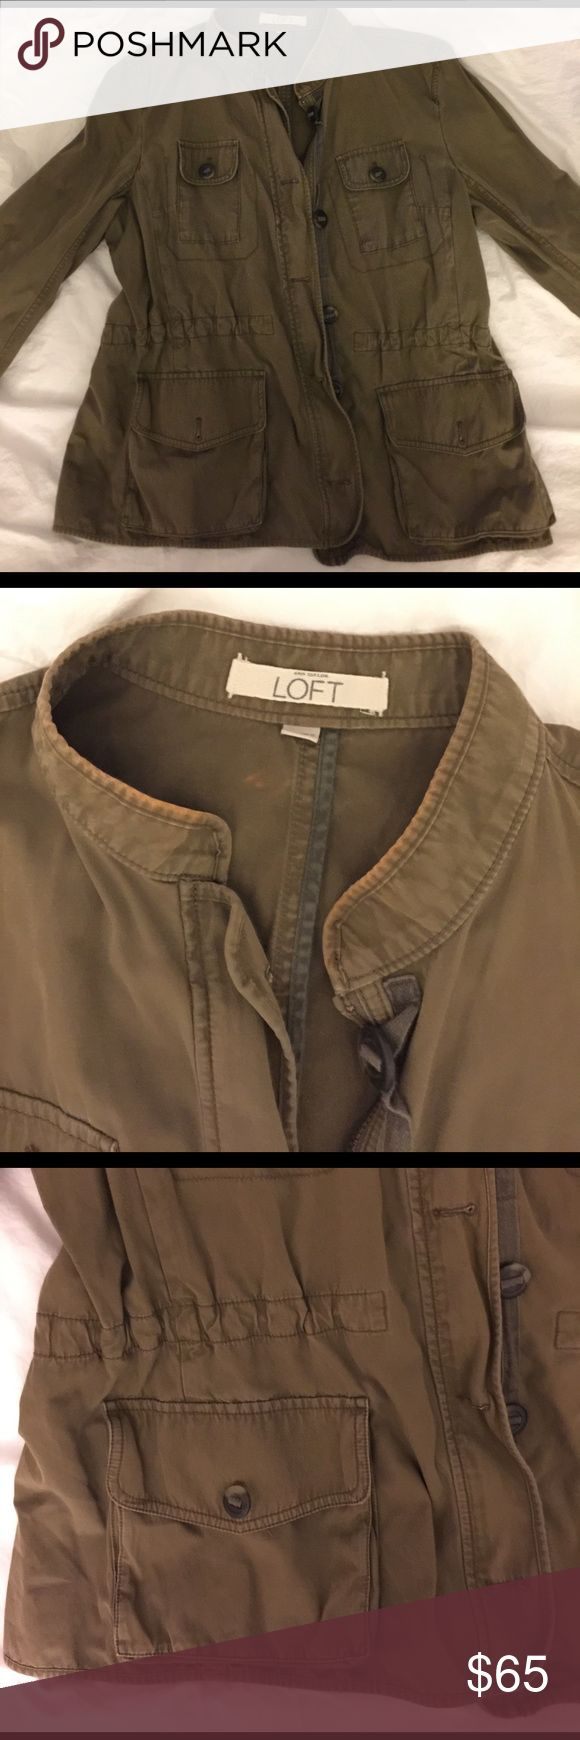 Ann Taylor Loft military jacket Army green military jacket with drawstring waist, size XL LOFT Jackets & Coats Utility Jackets